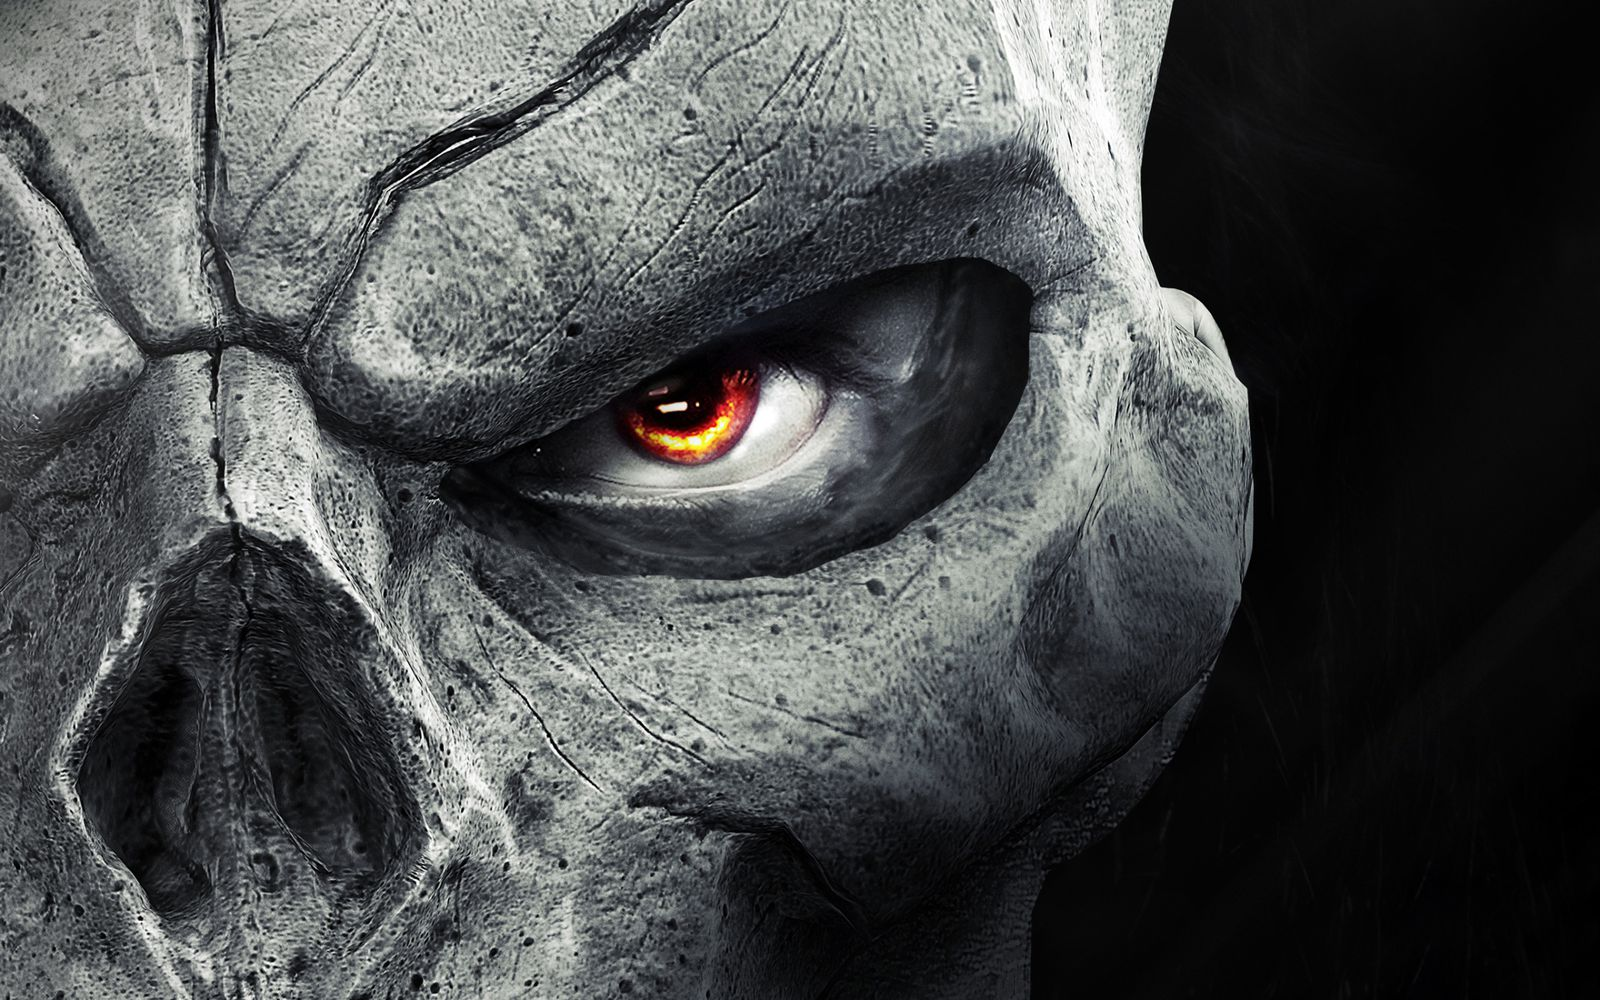 Death, héros de ce Darksiders 2.